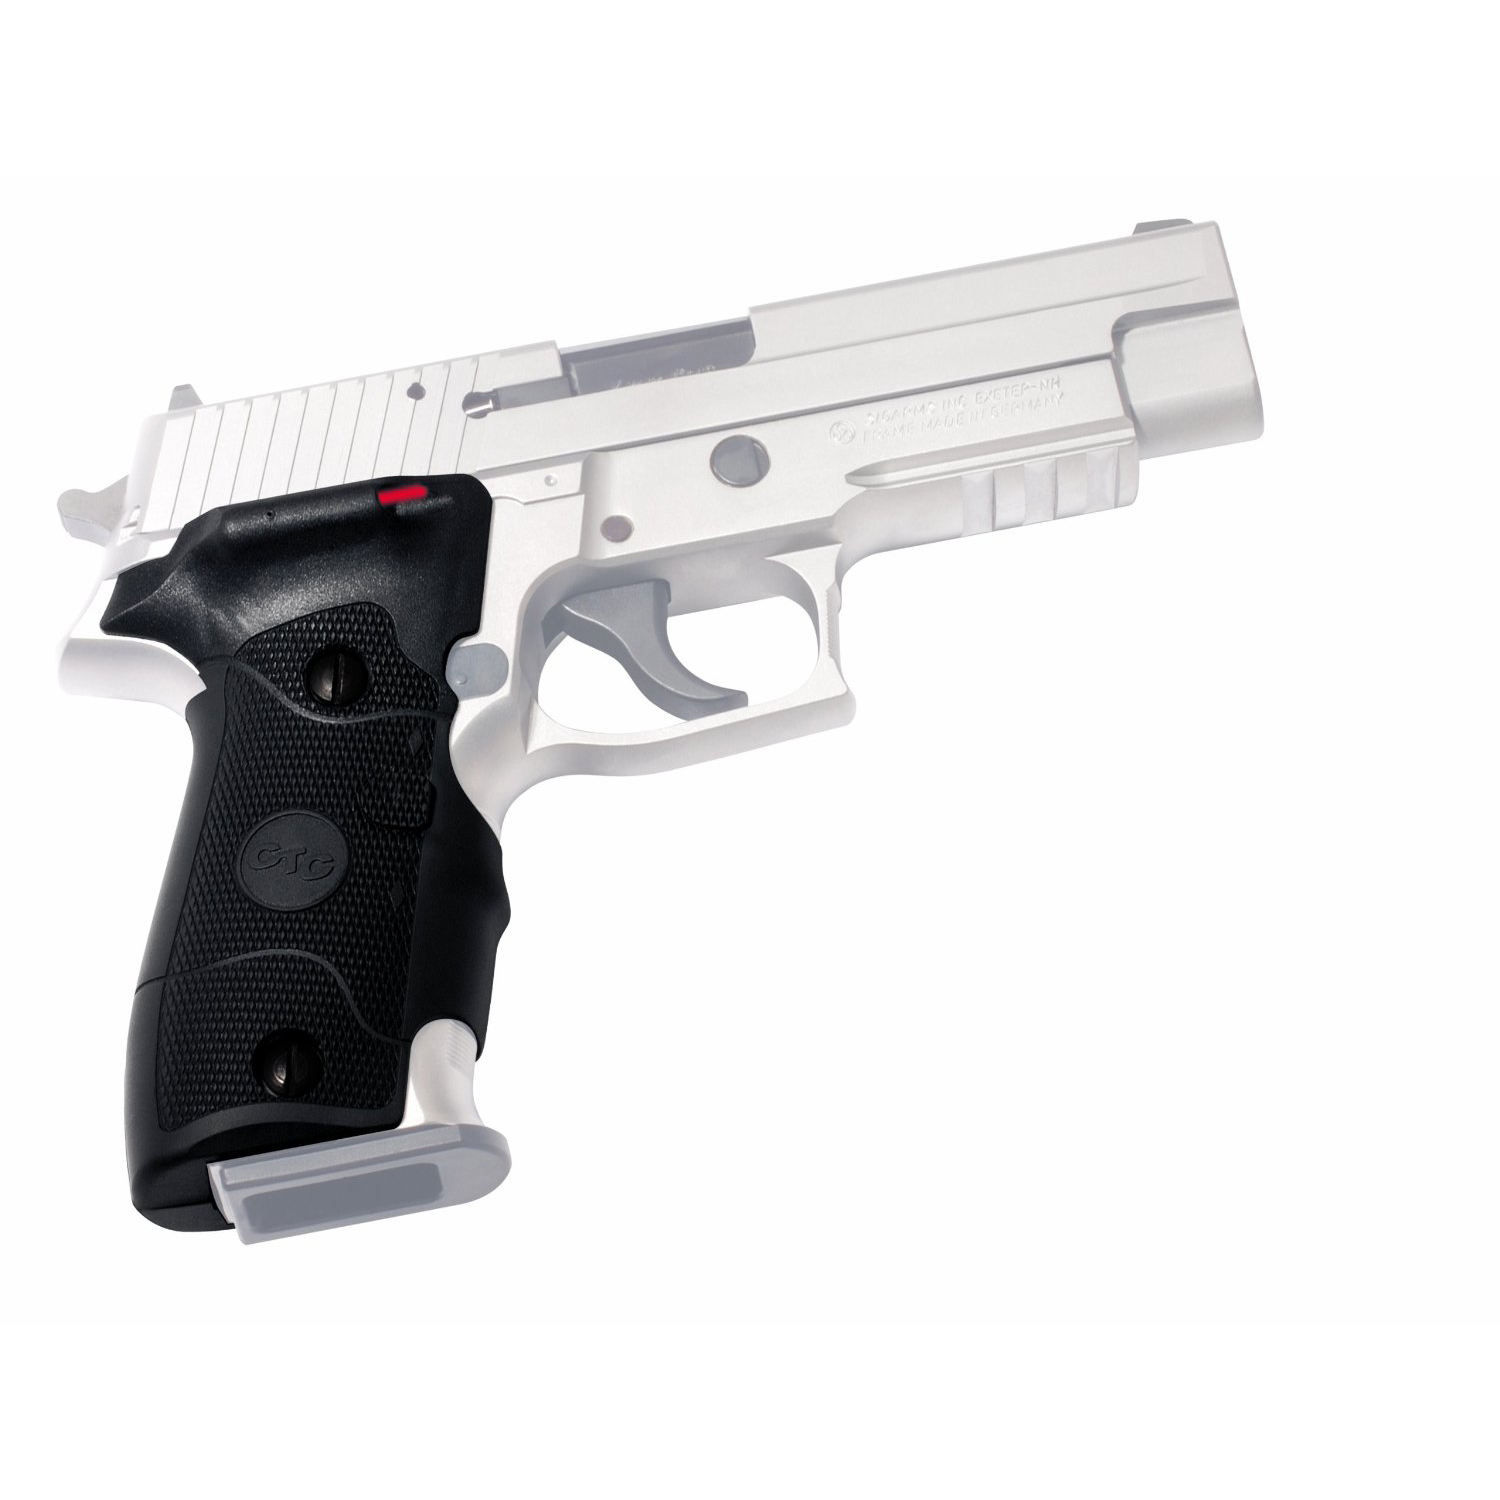 Crimson Trace LG-426 Front Activated Red Laser Grip for Sig Sauer P226